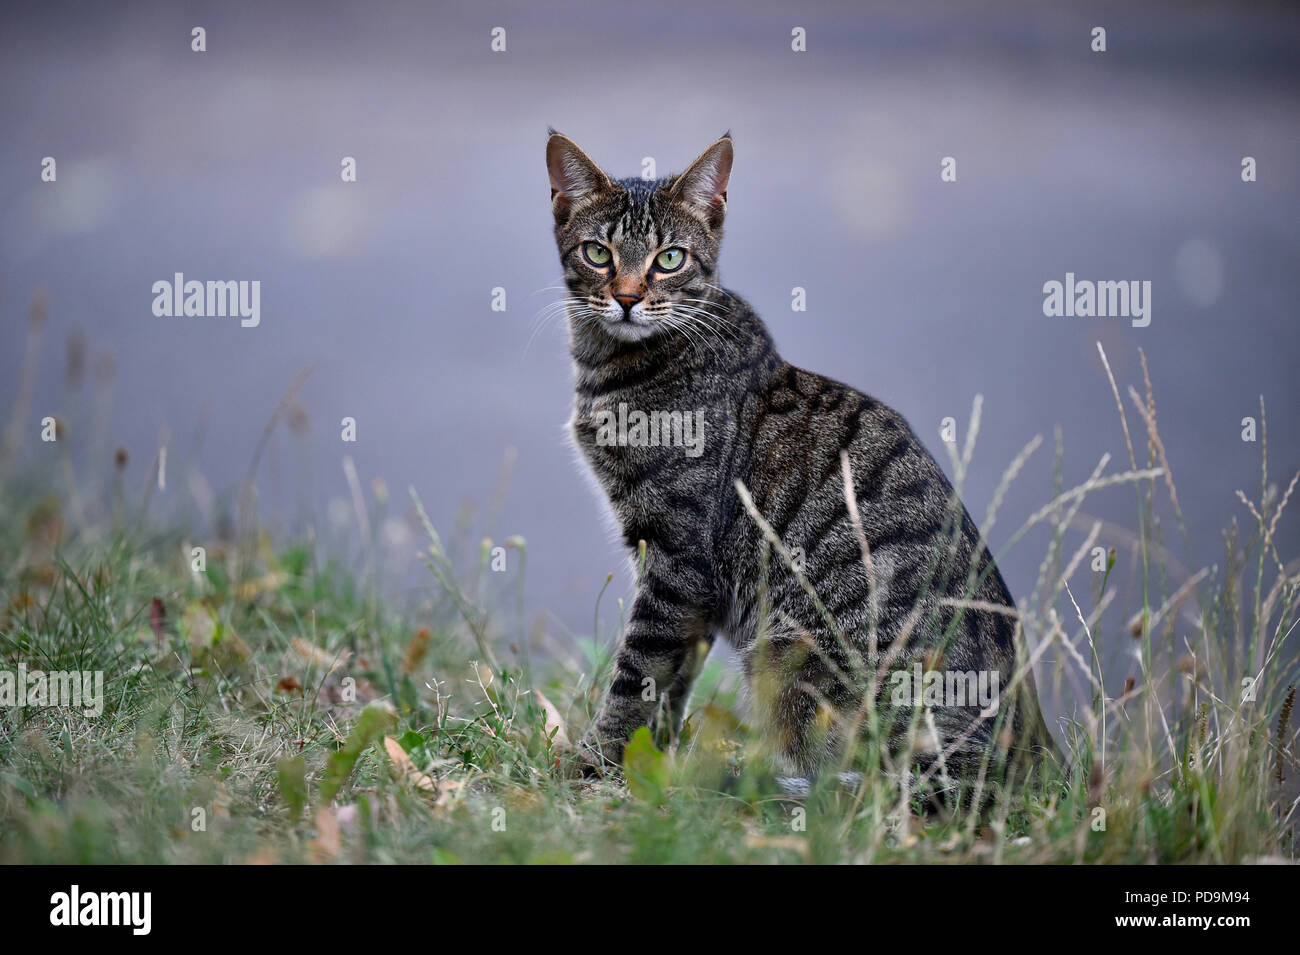 Domestic cat, kitten, 9 months, sitting in the grass, Germany Stock Photo